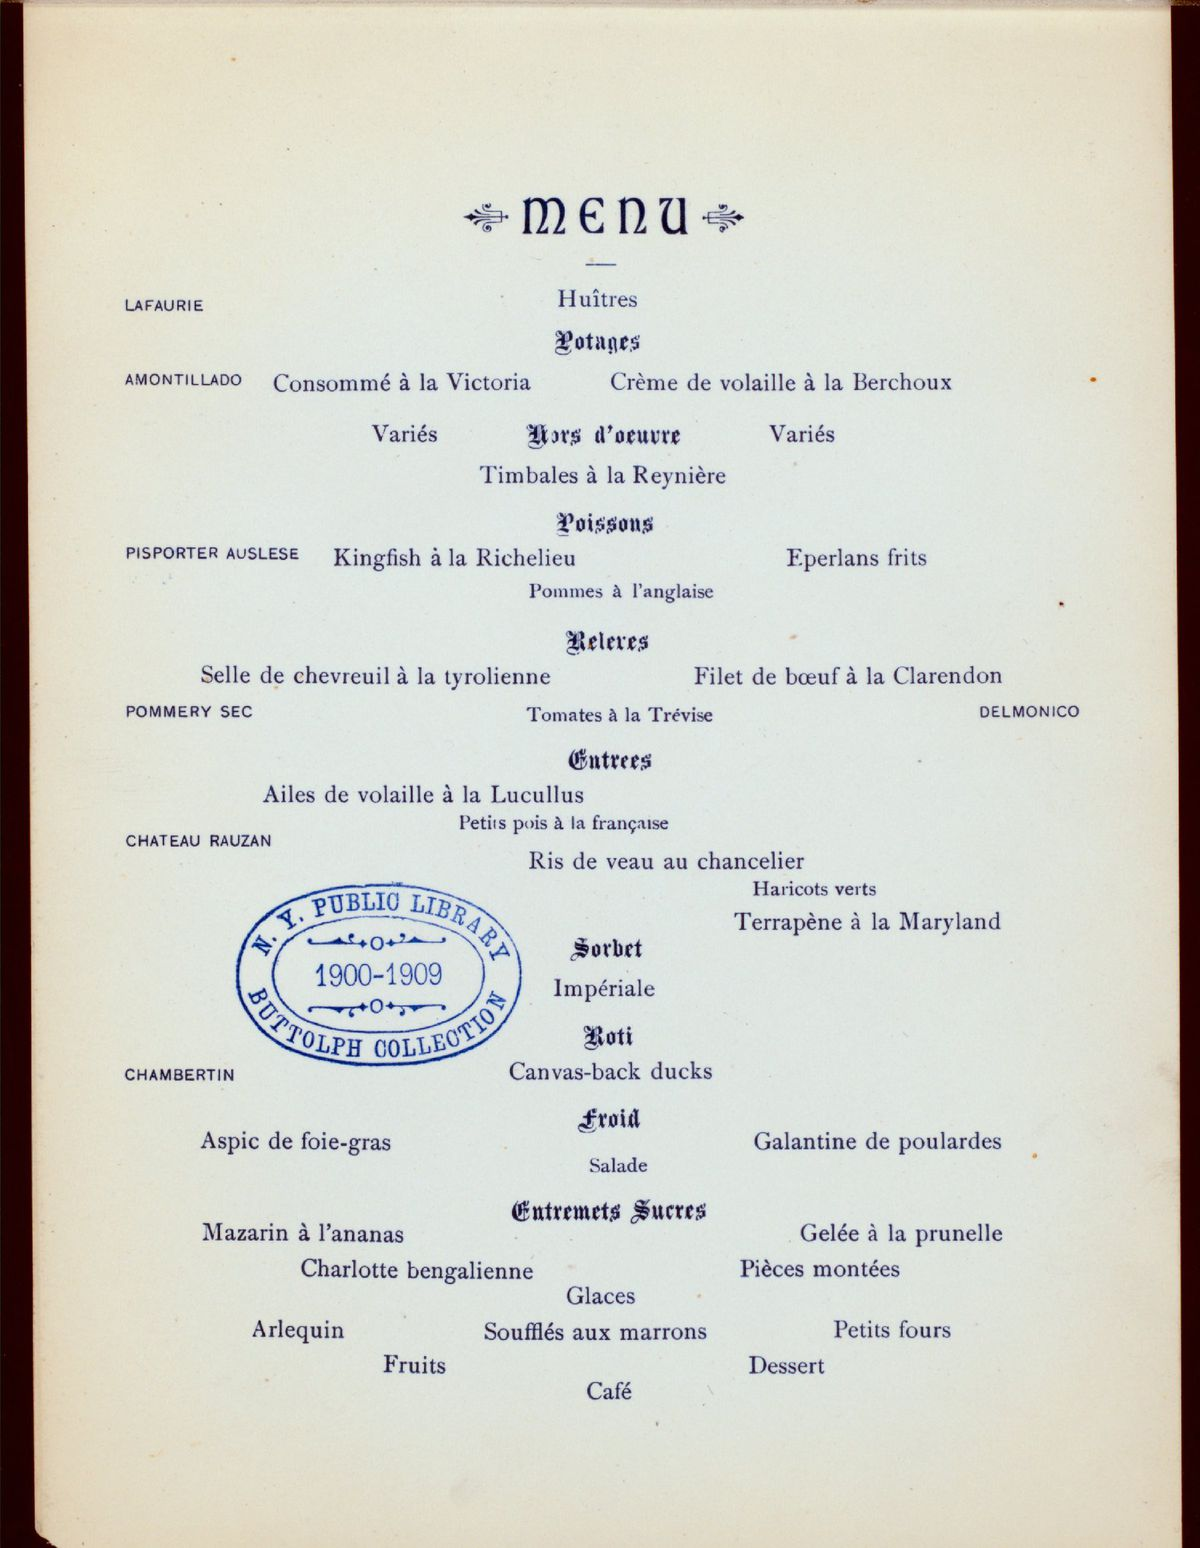 Comparing Nine Vintage Restaurant Menus To Their 2015 Counterparts Eater Ny